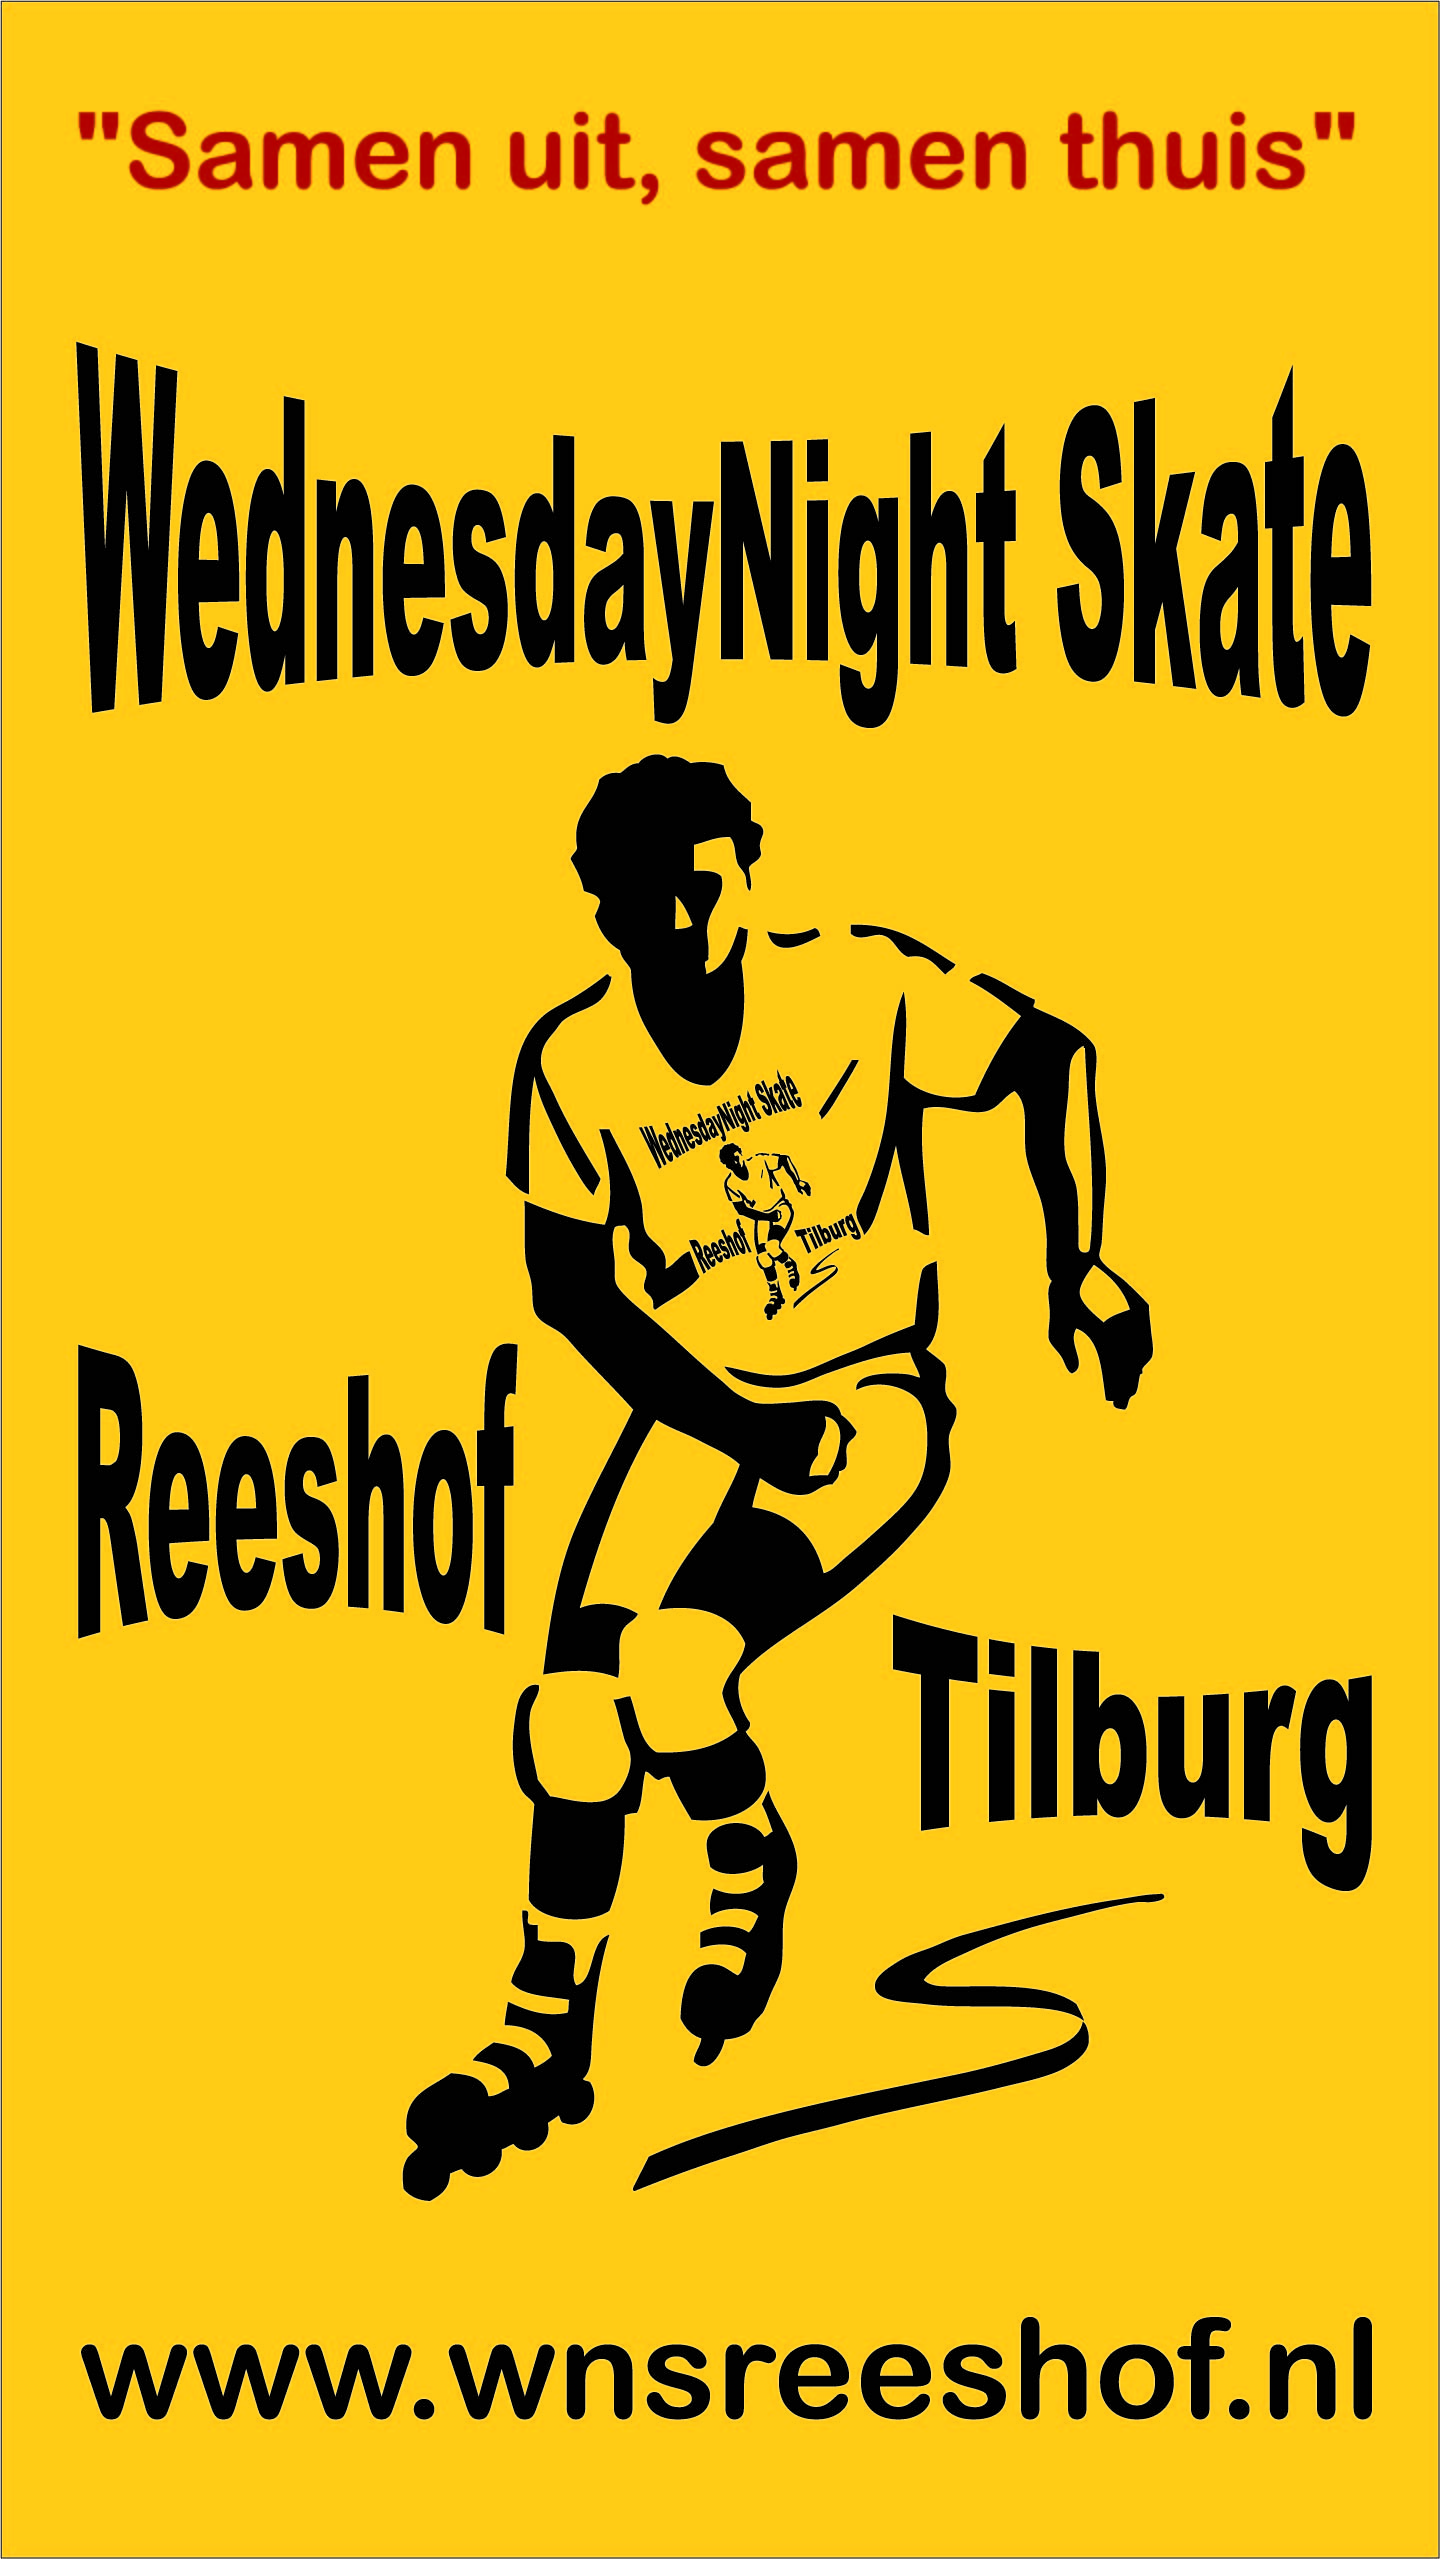 Wednesday Night Skate Reeshof